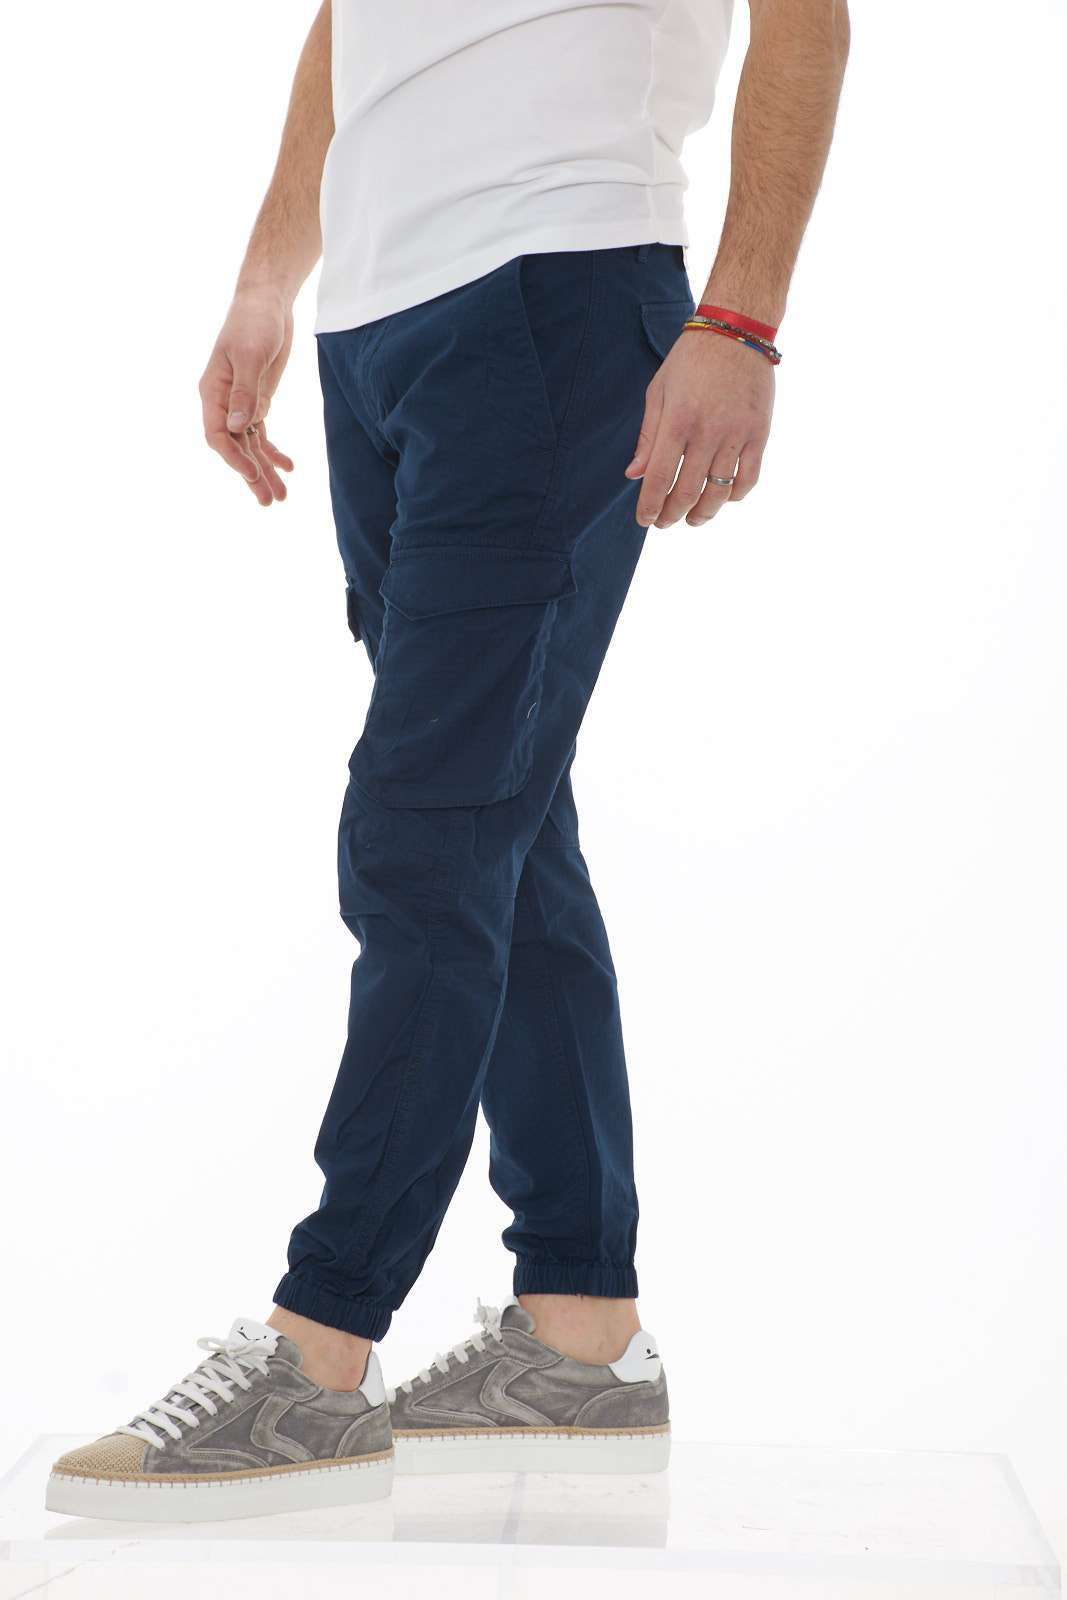 https://www.parmax.com/media/catalog/product/a/i/PE-outlet_parmax-pantaloni-uomo-Timberland-TB%200A1OBC-B.jpg